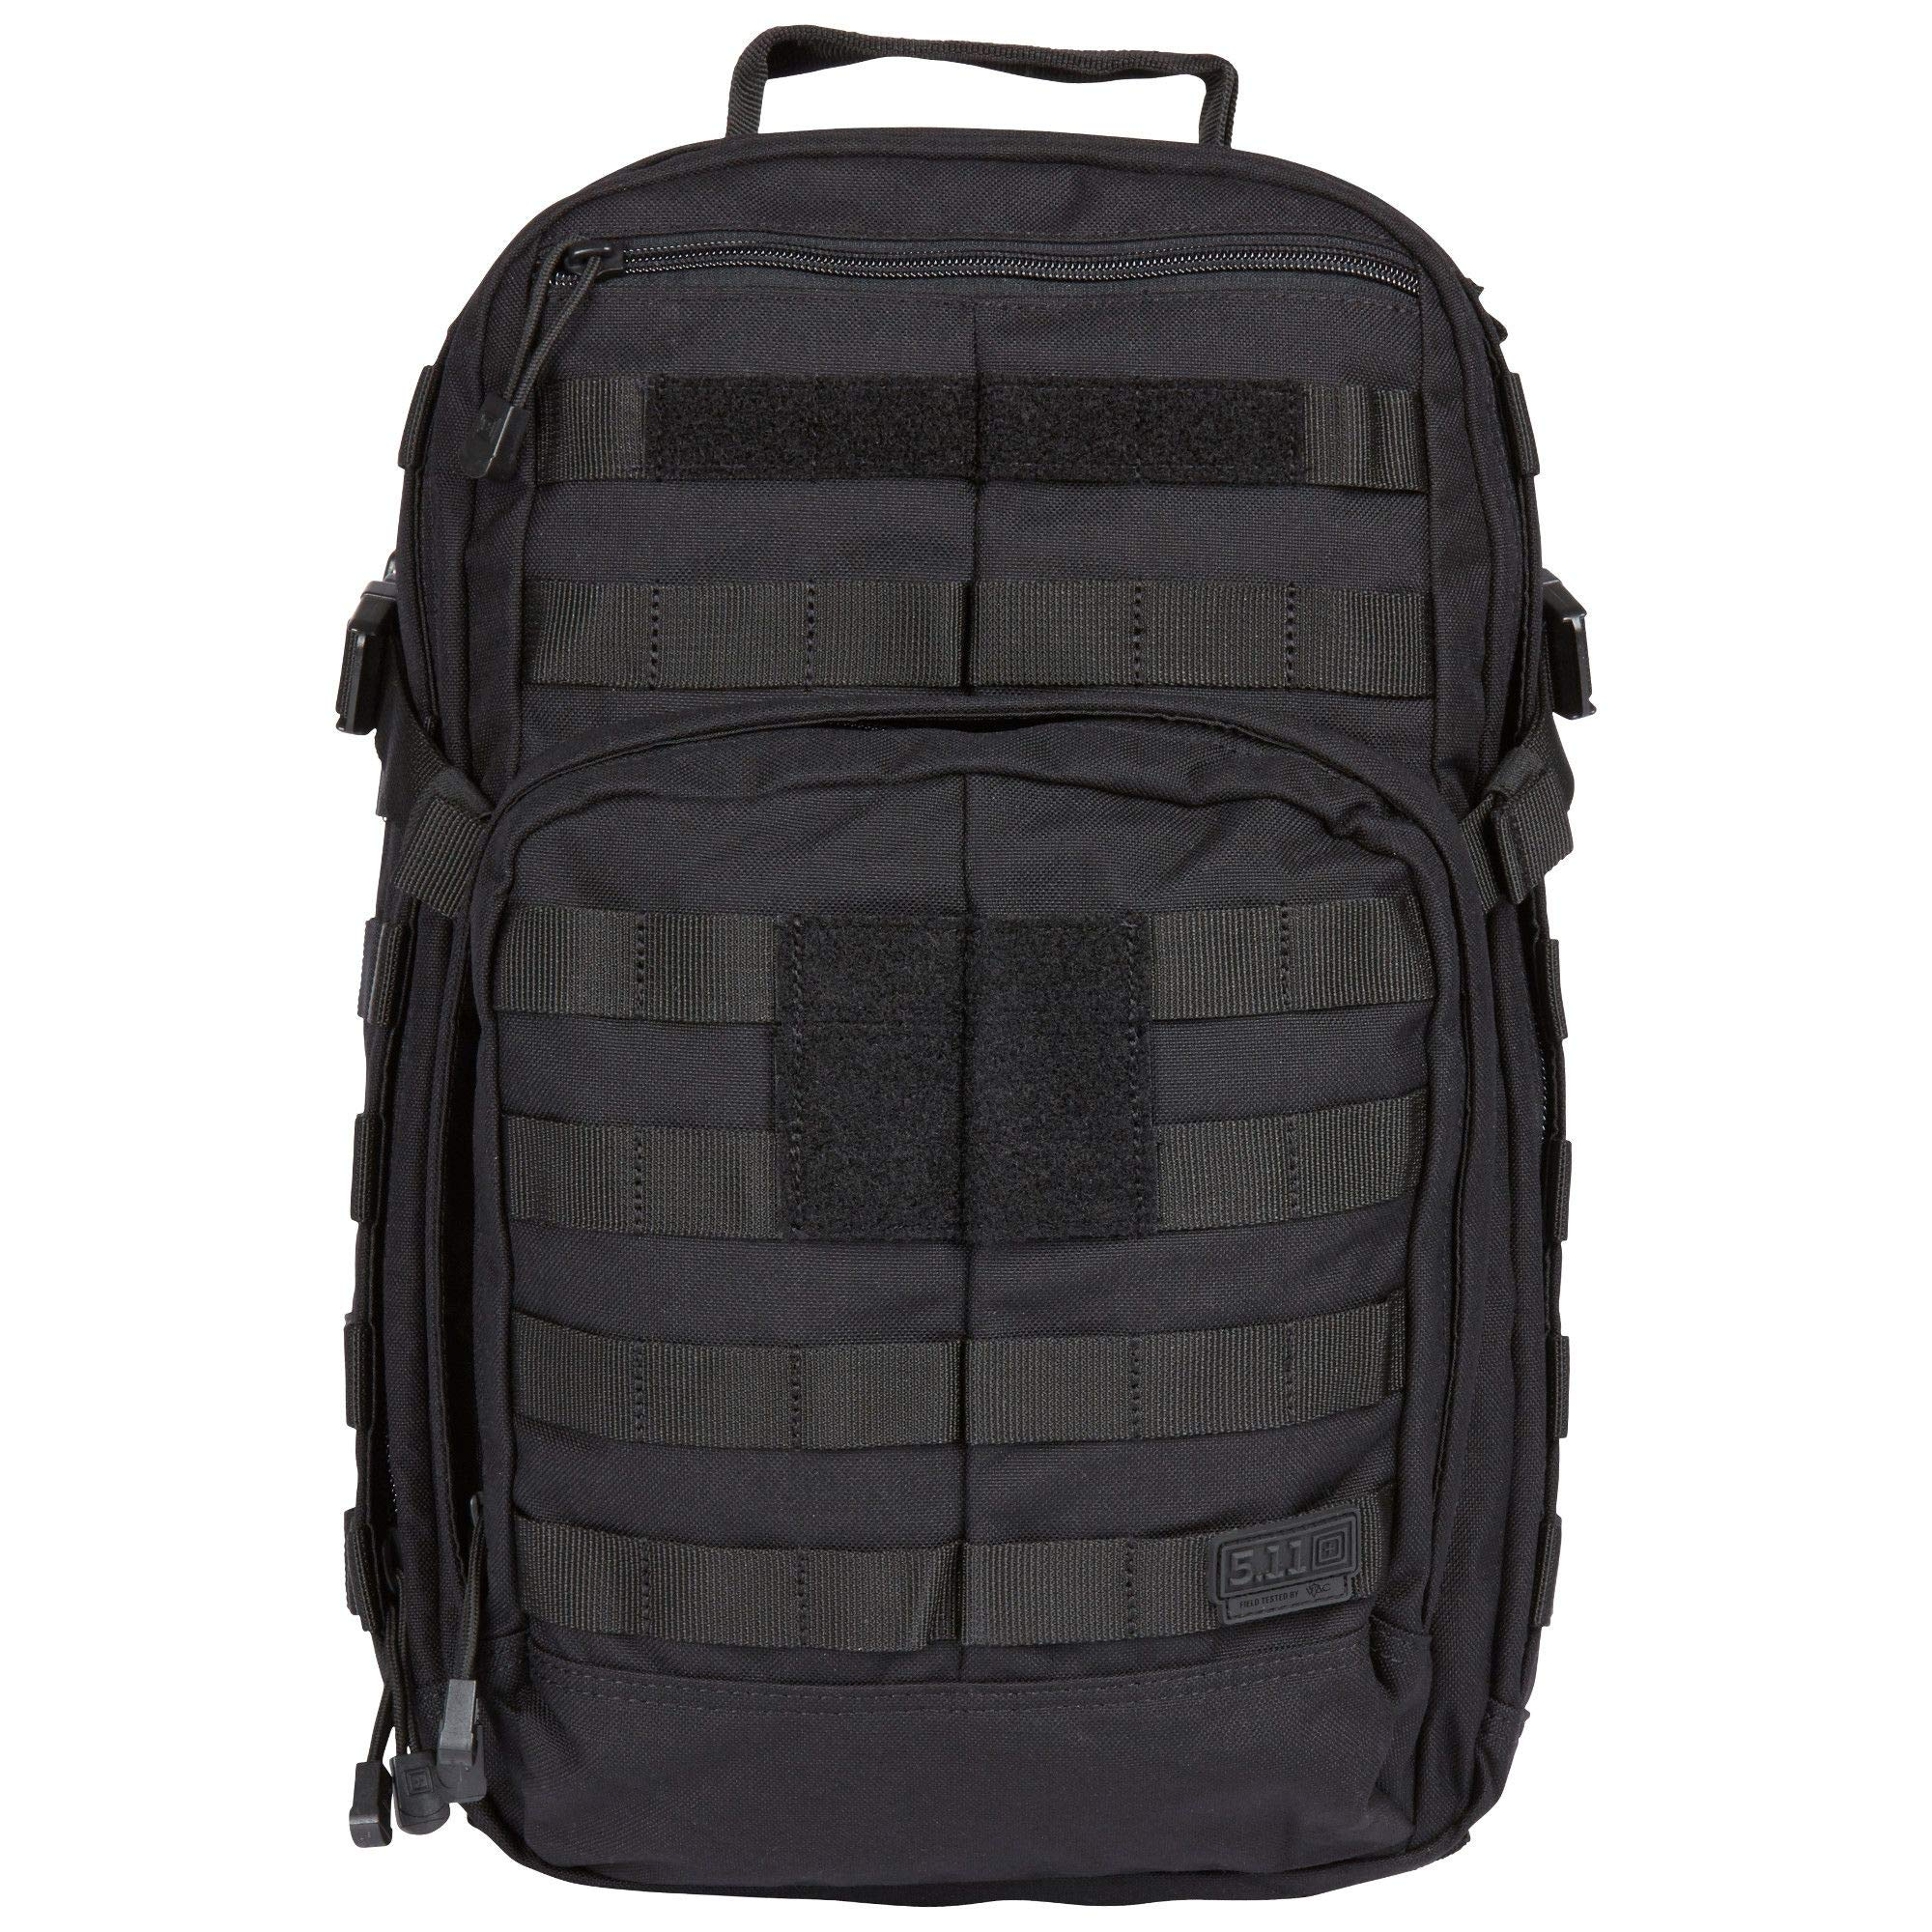 5.11 RUSH12 Tactical Military Assault Molle Backpack, Bug Out Rucksack Bag, Small, Style 56892, Black